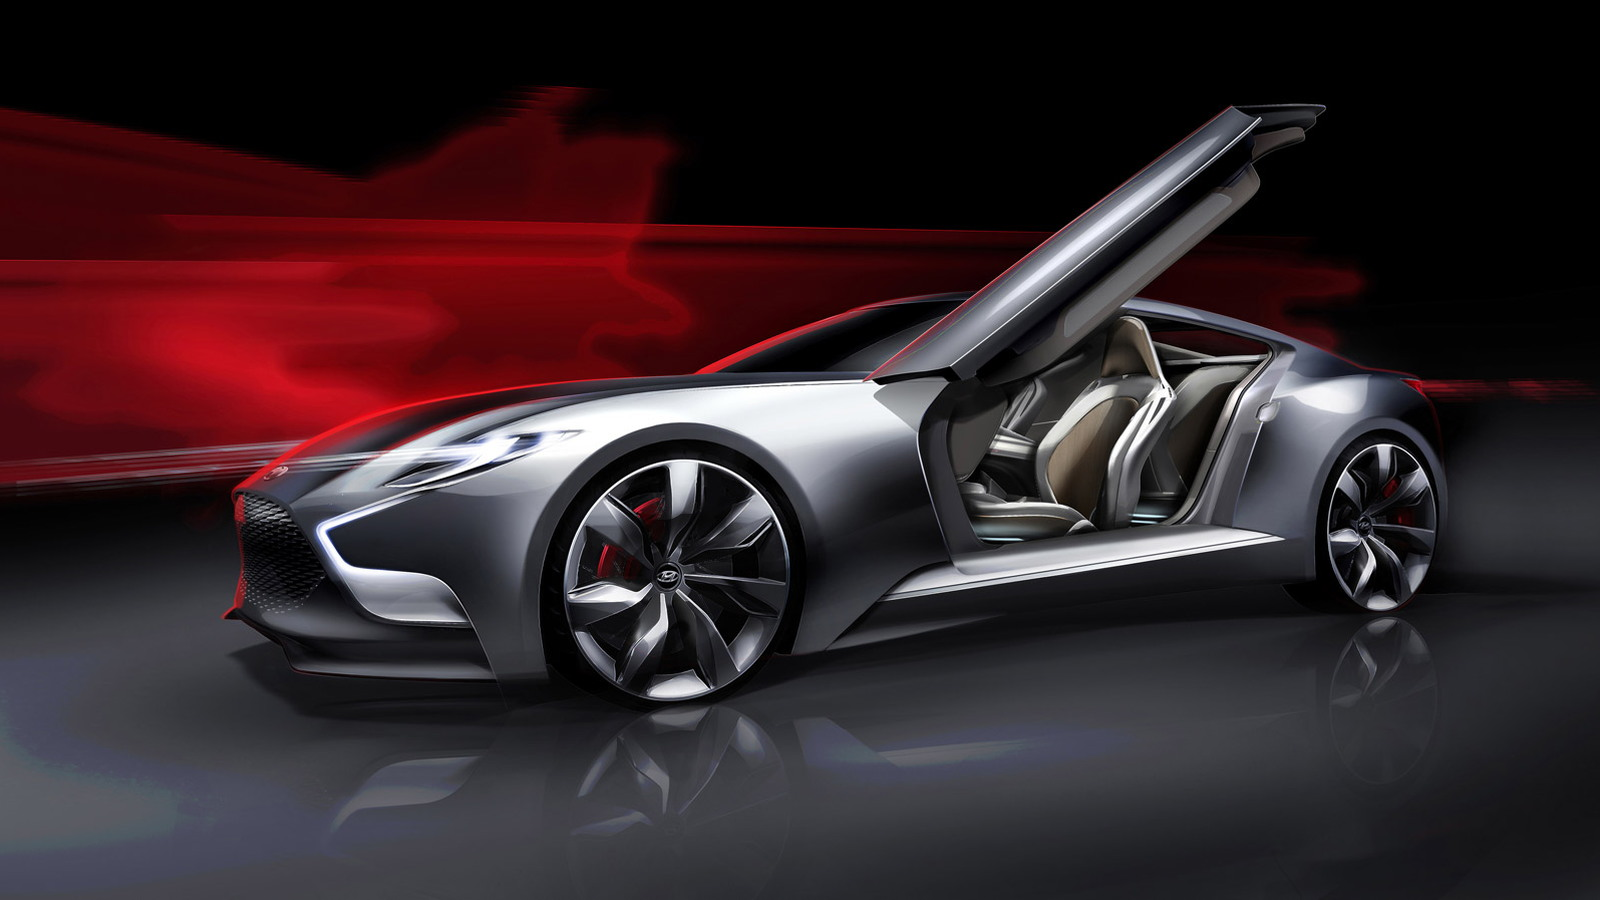 Next-Gen Hyundai Genesis Coupe Previewed By HND-3 Concept